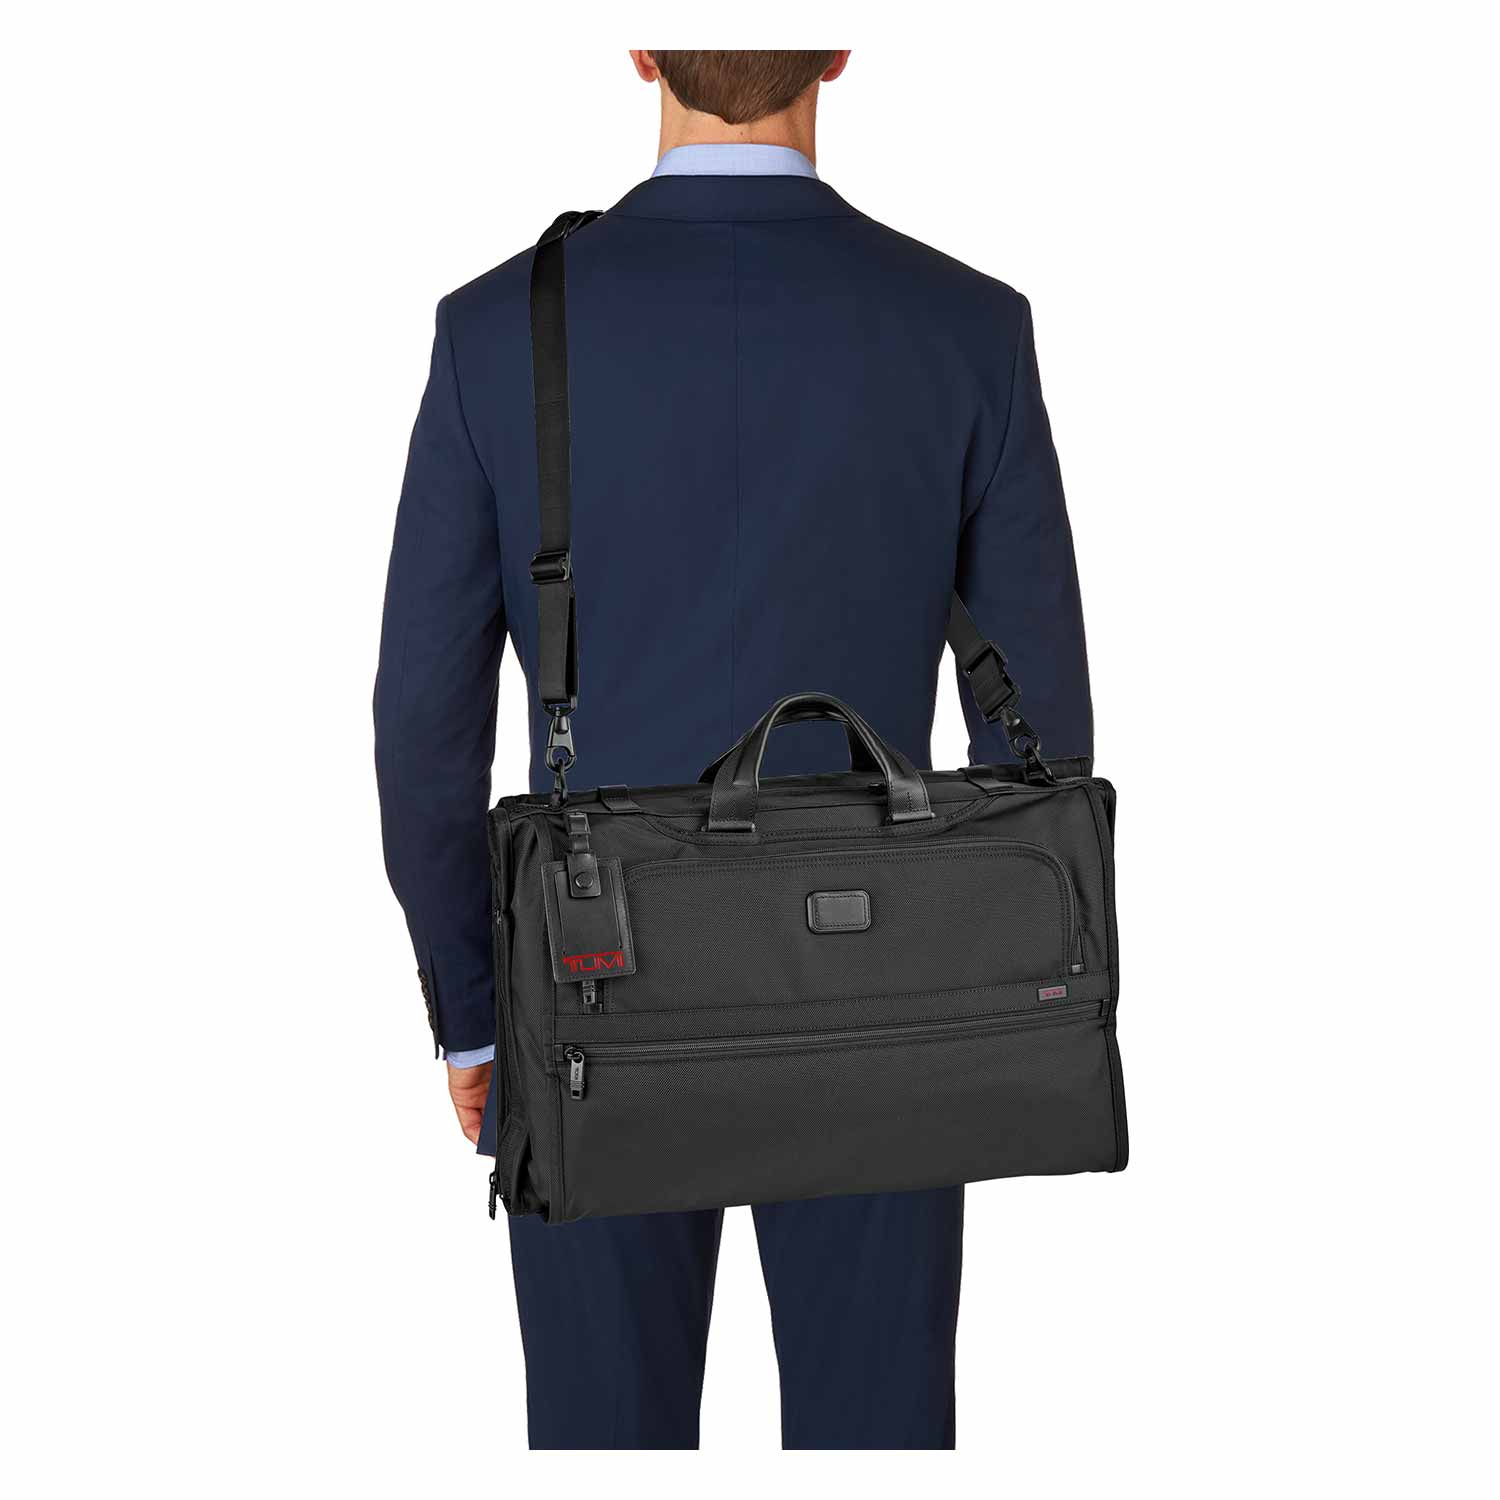 00ff7f905b38 Tumi - Alpha 2 Garment Bags - Trifold Carry On Garment Bag - Caseluggage.com